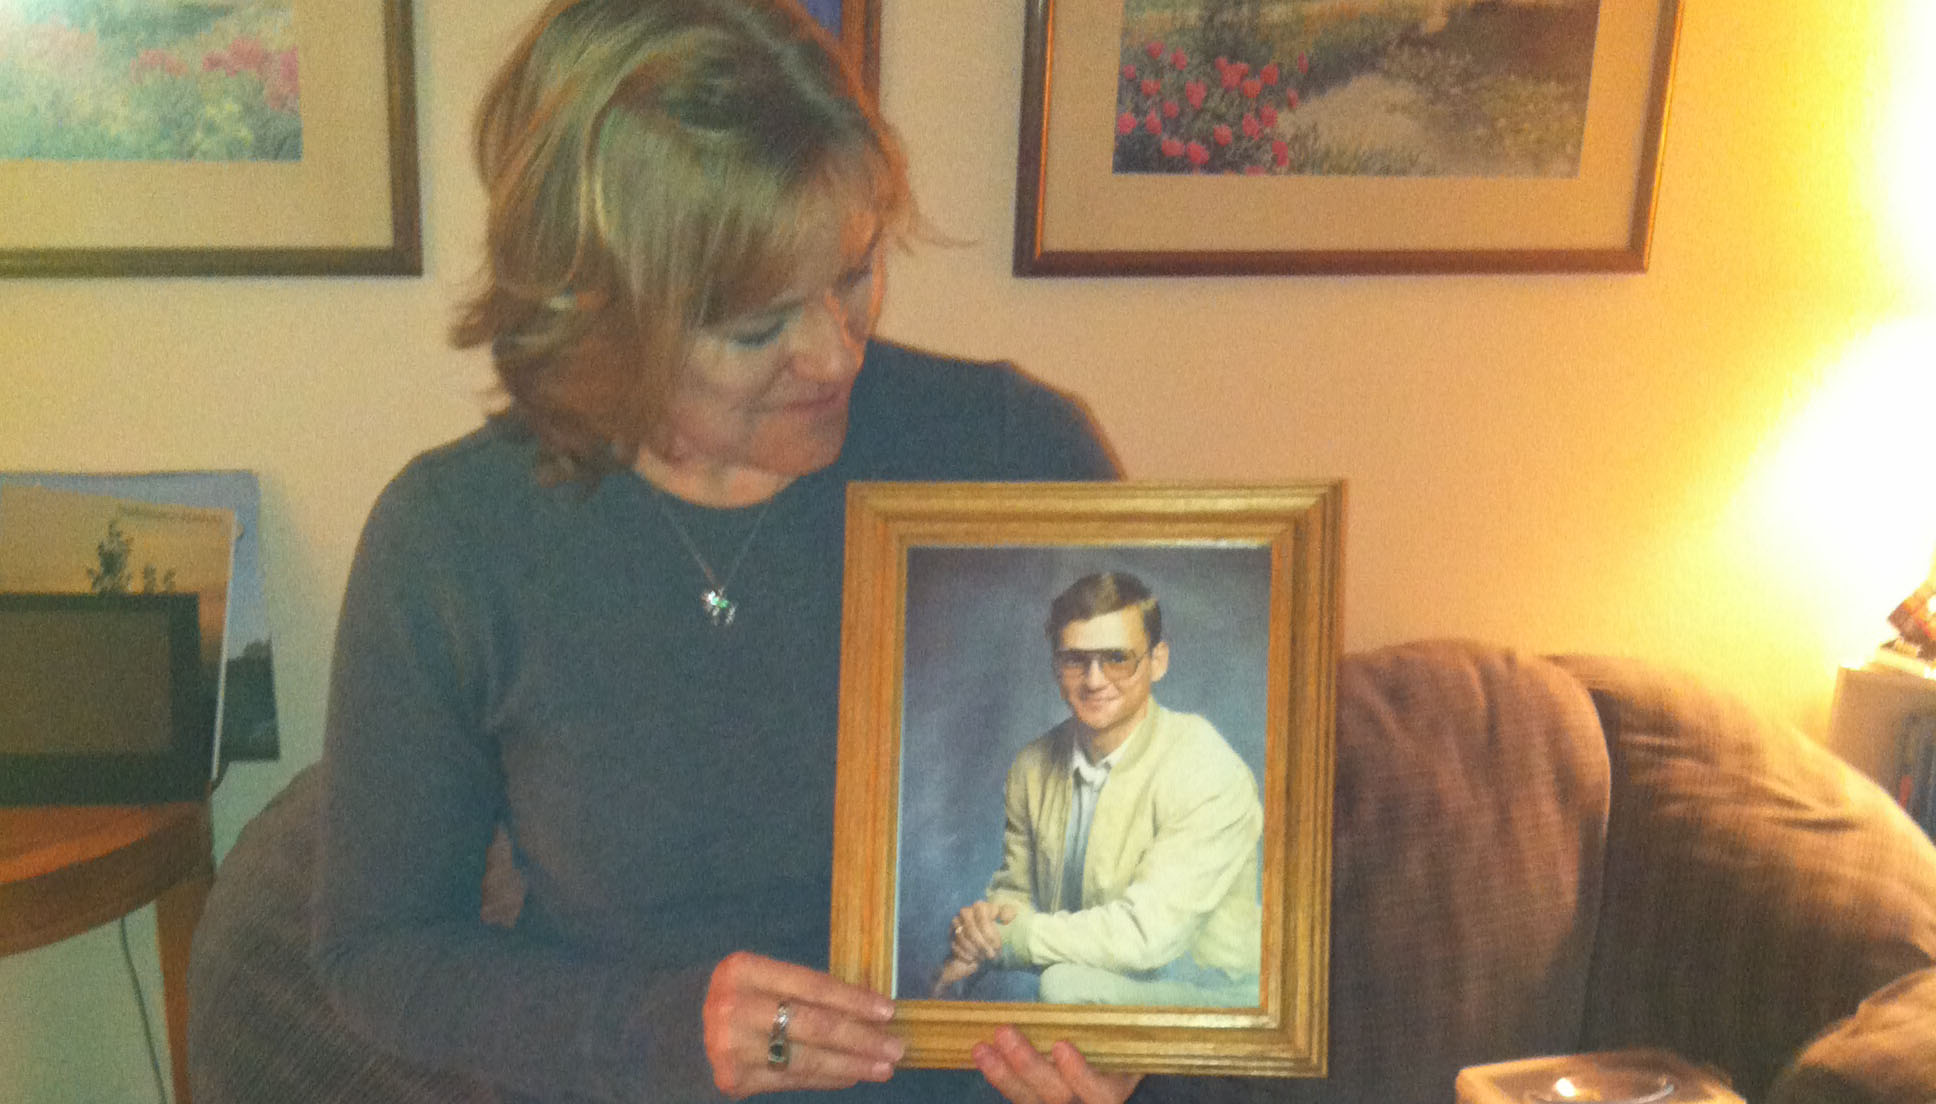 Ronda Hatefi holds a picture of her brother, Bobby, a problem gambler who committed suicide in 1995.